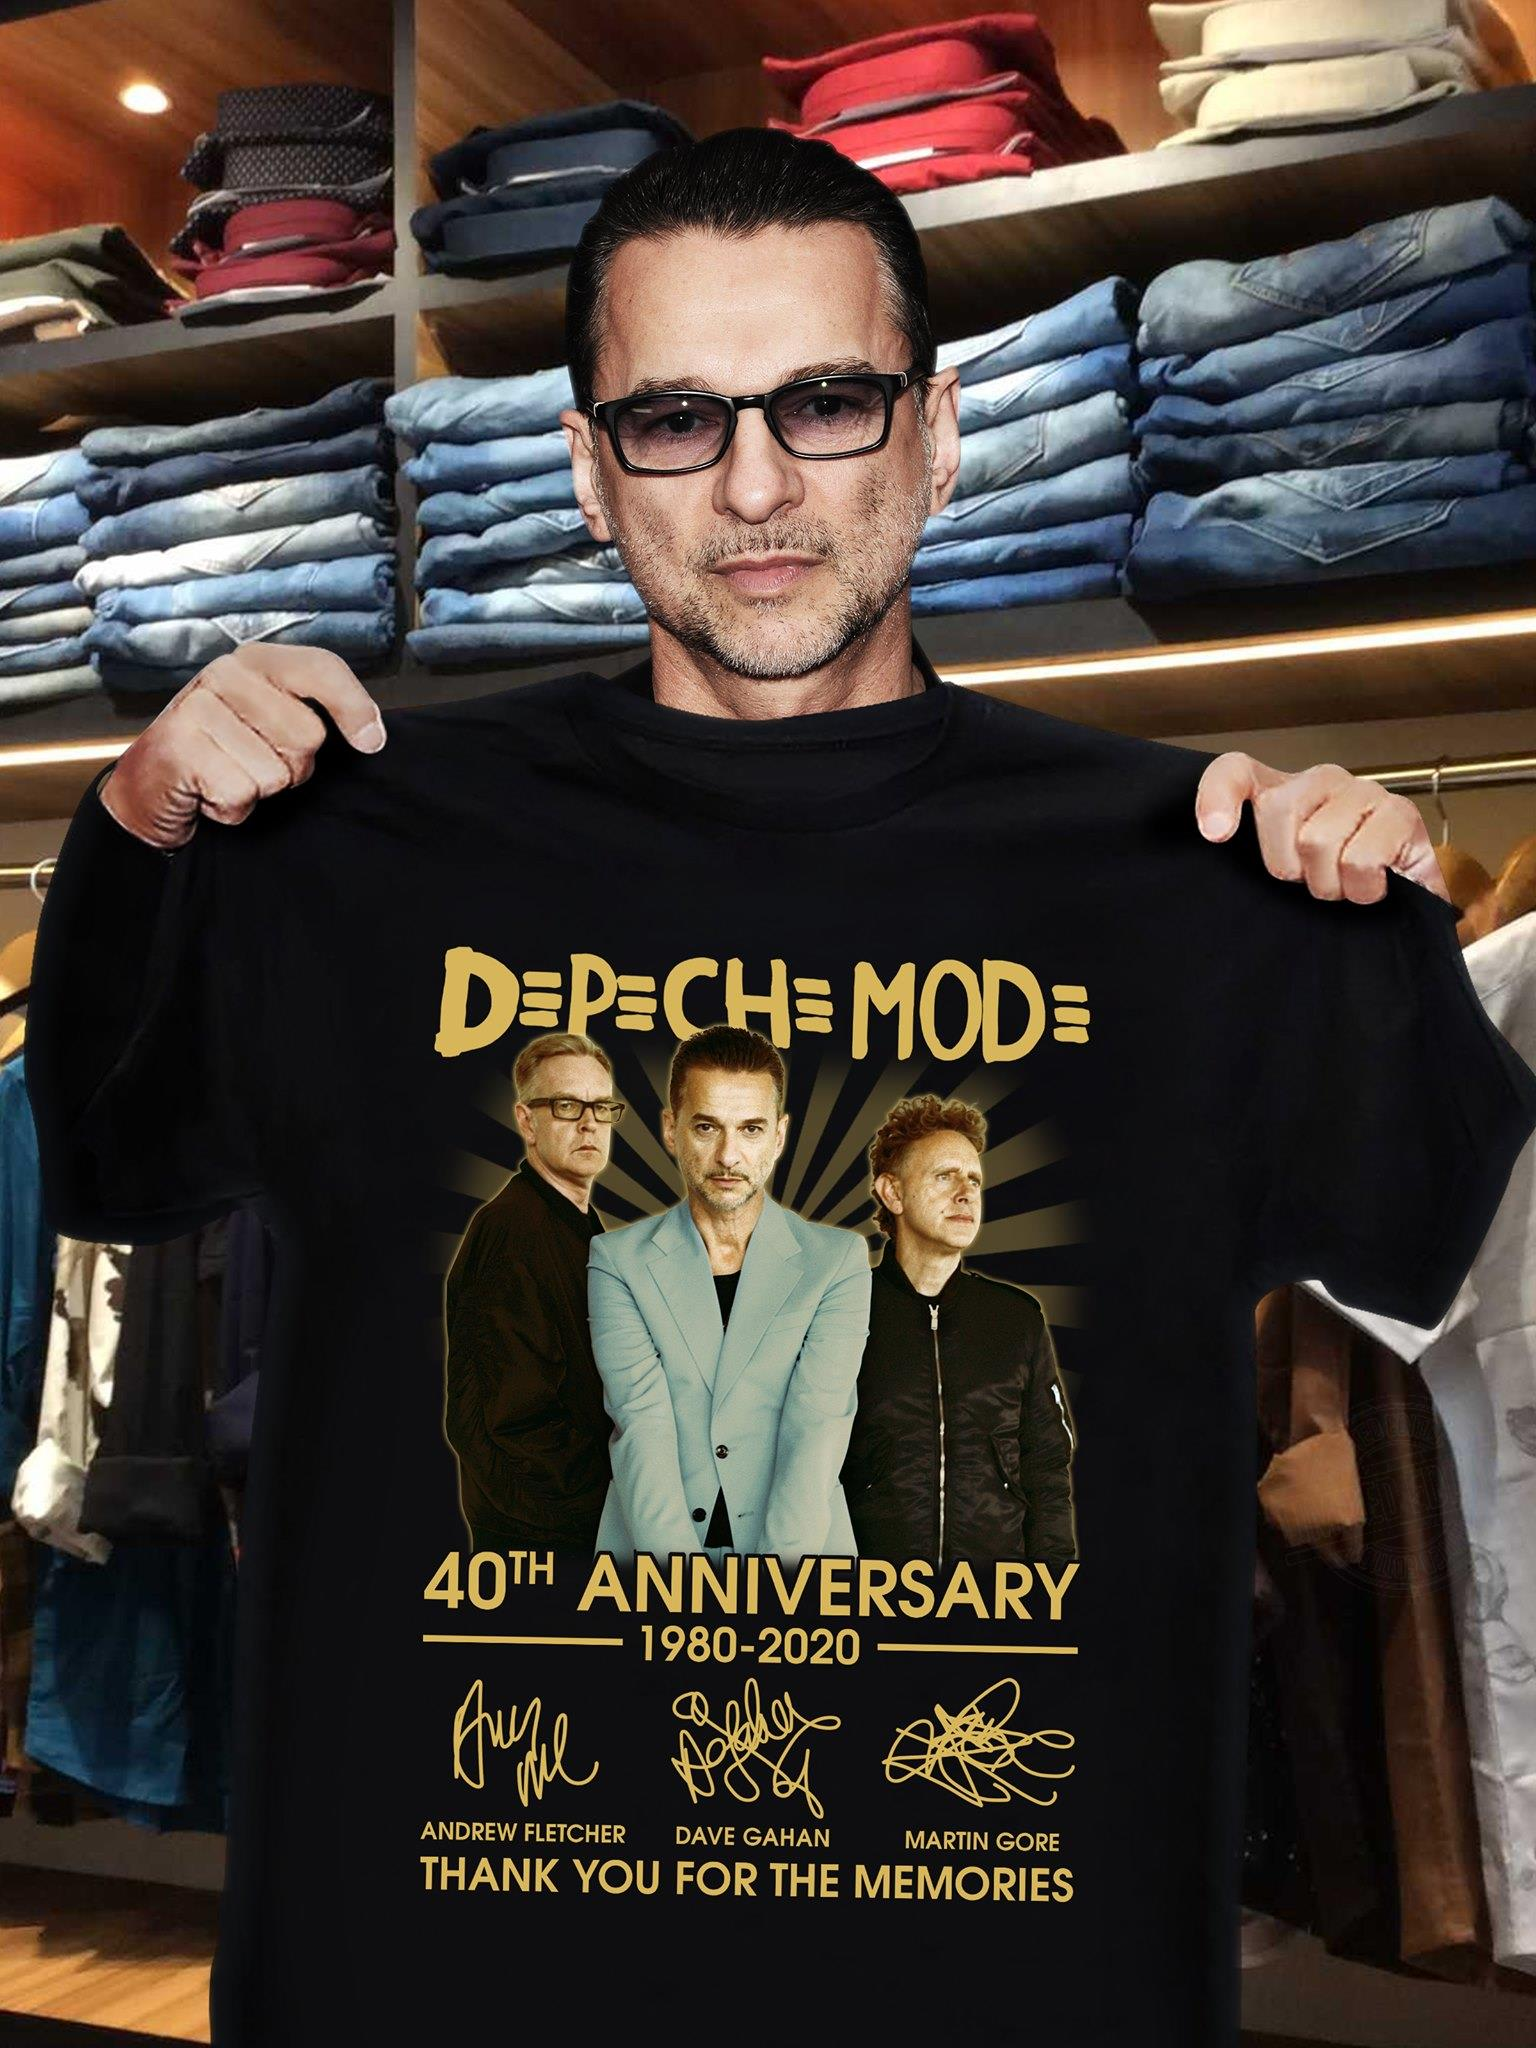 Depeche Mode 40th Anniversary 1980 - 2020 Members Signature And Thank You For The Memories Shirt